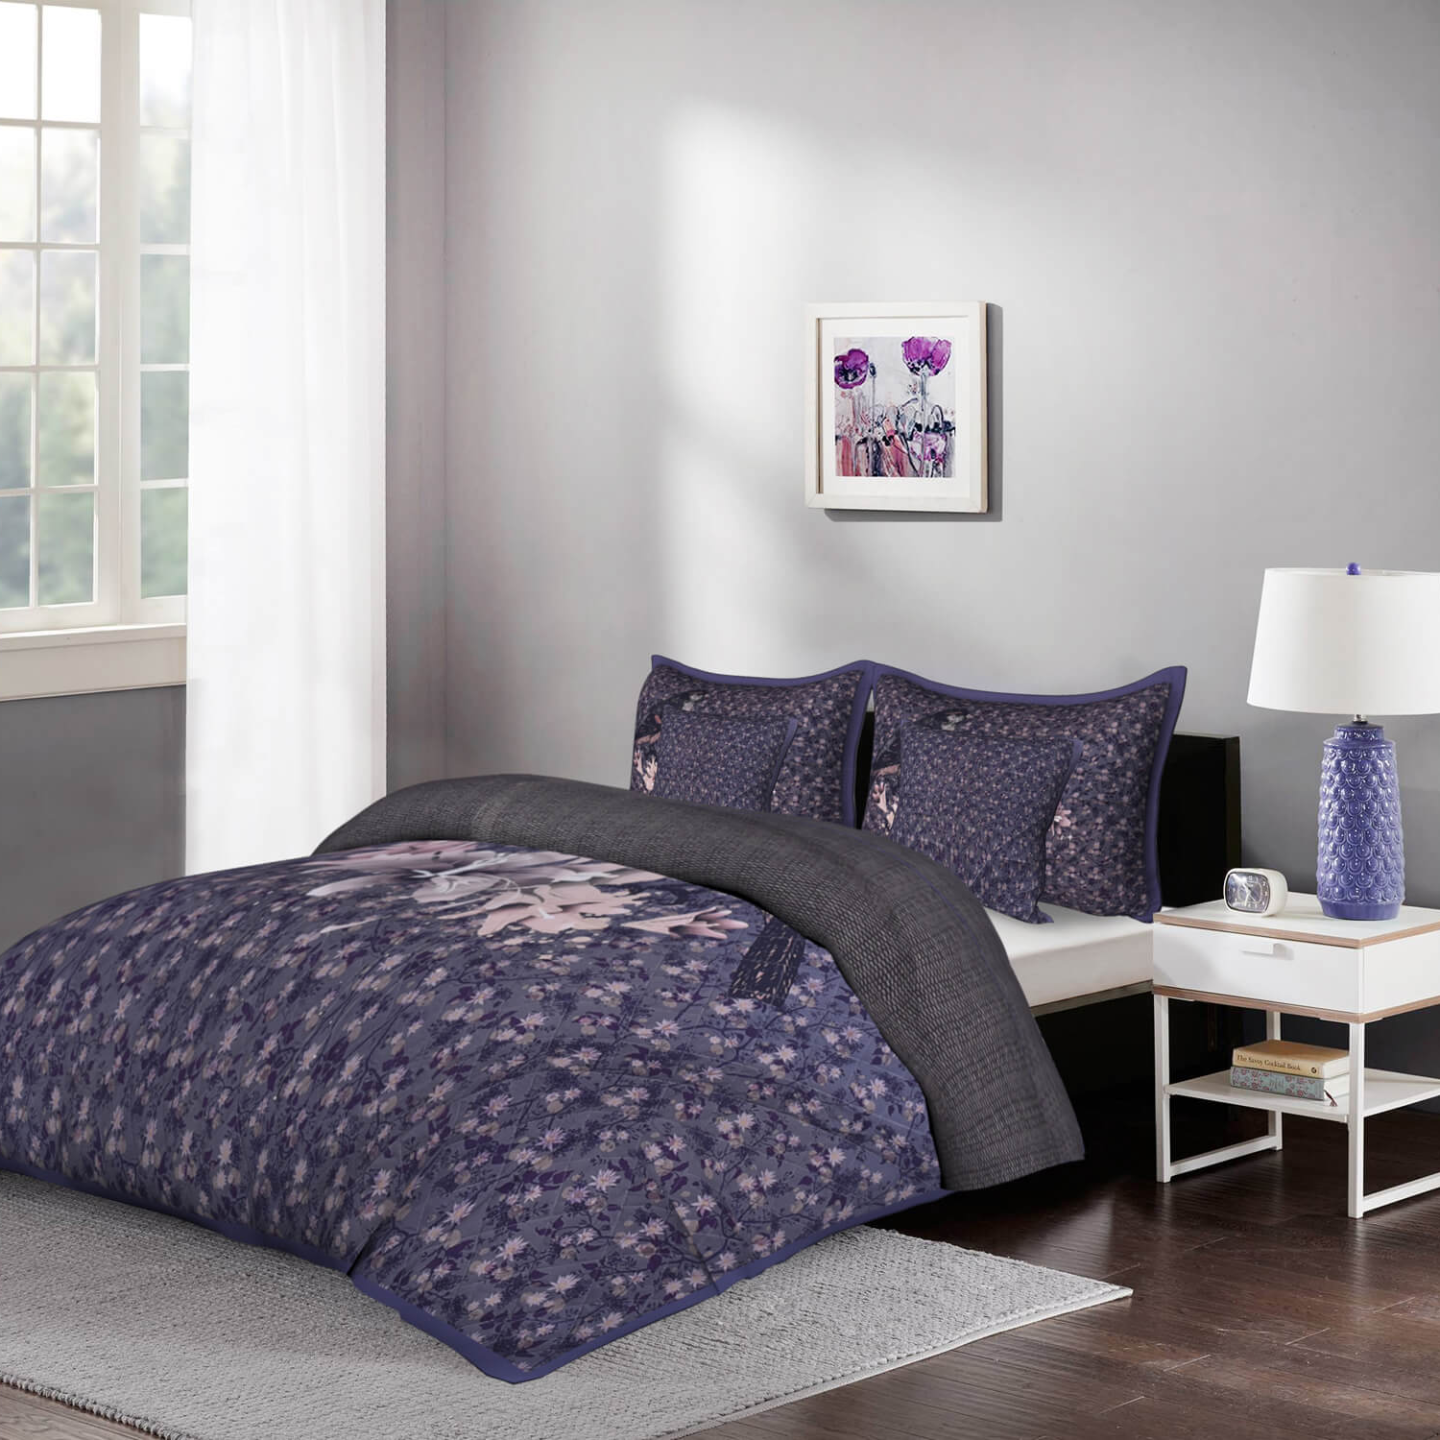 Birdsong 5 Piece King Size Cotton Quilted Bedspread